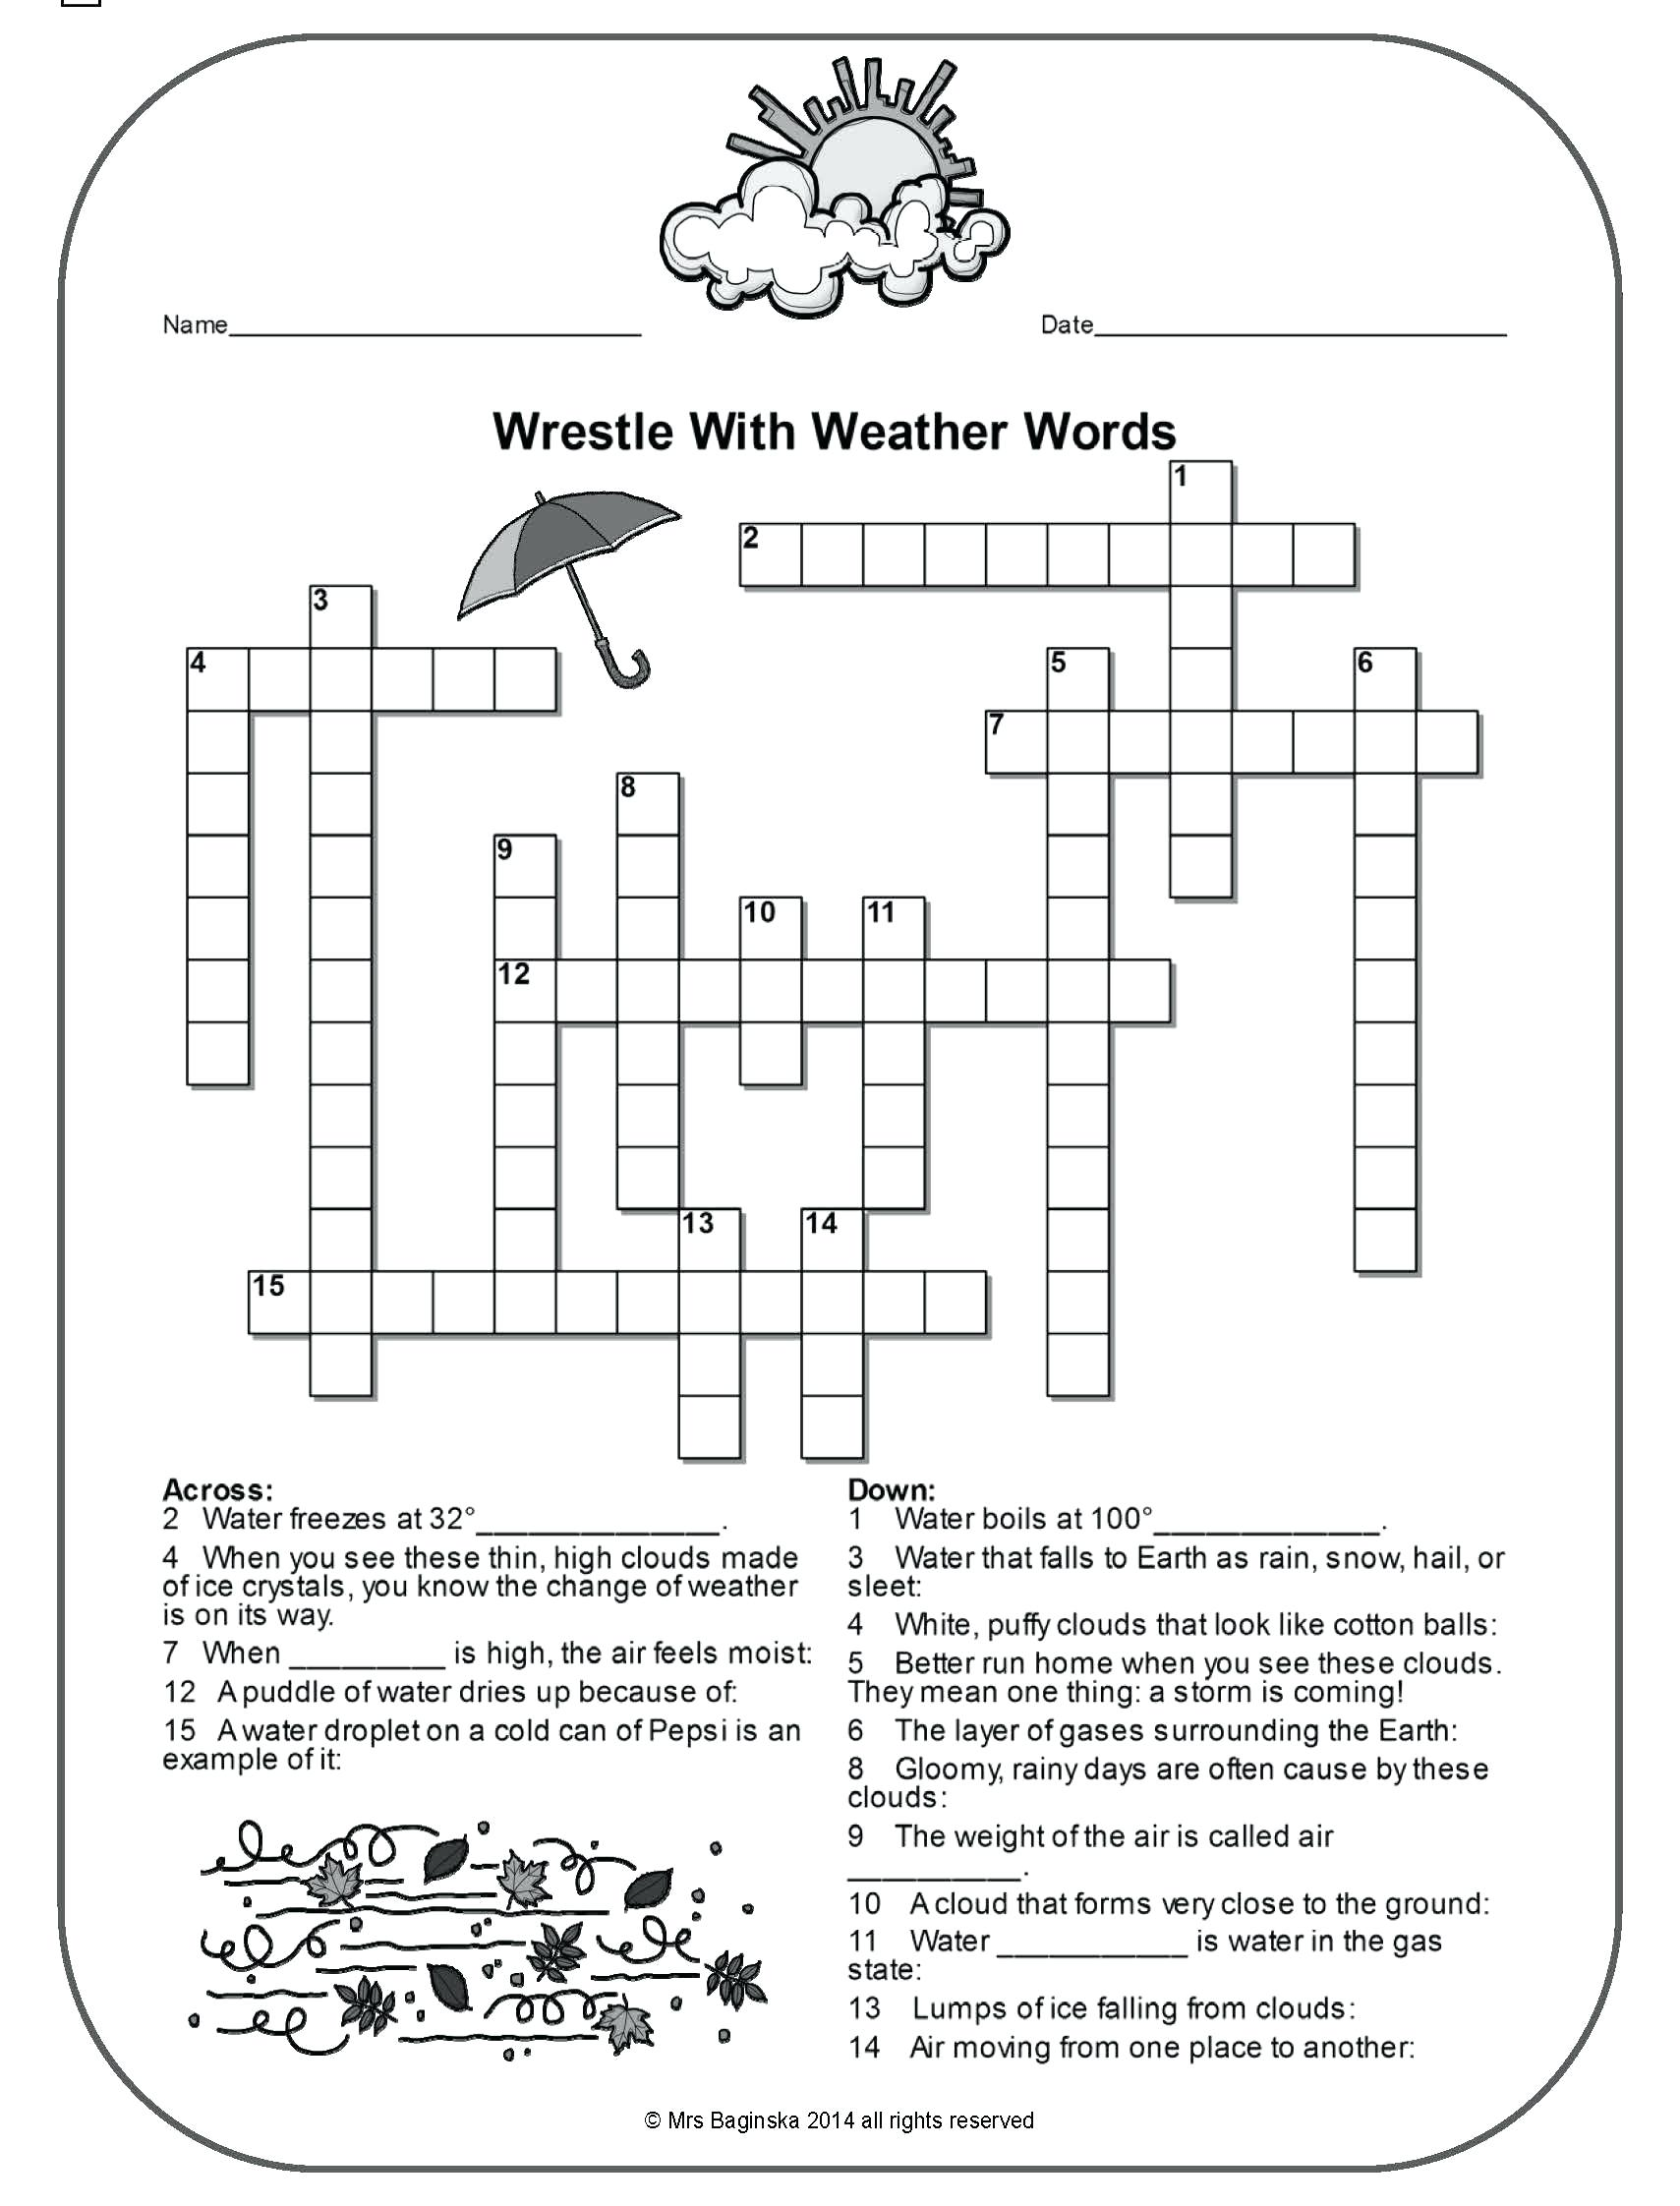 Worksheet 2nd Grade Weather Forecast